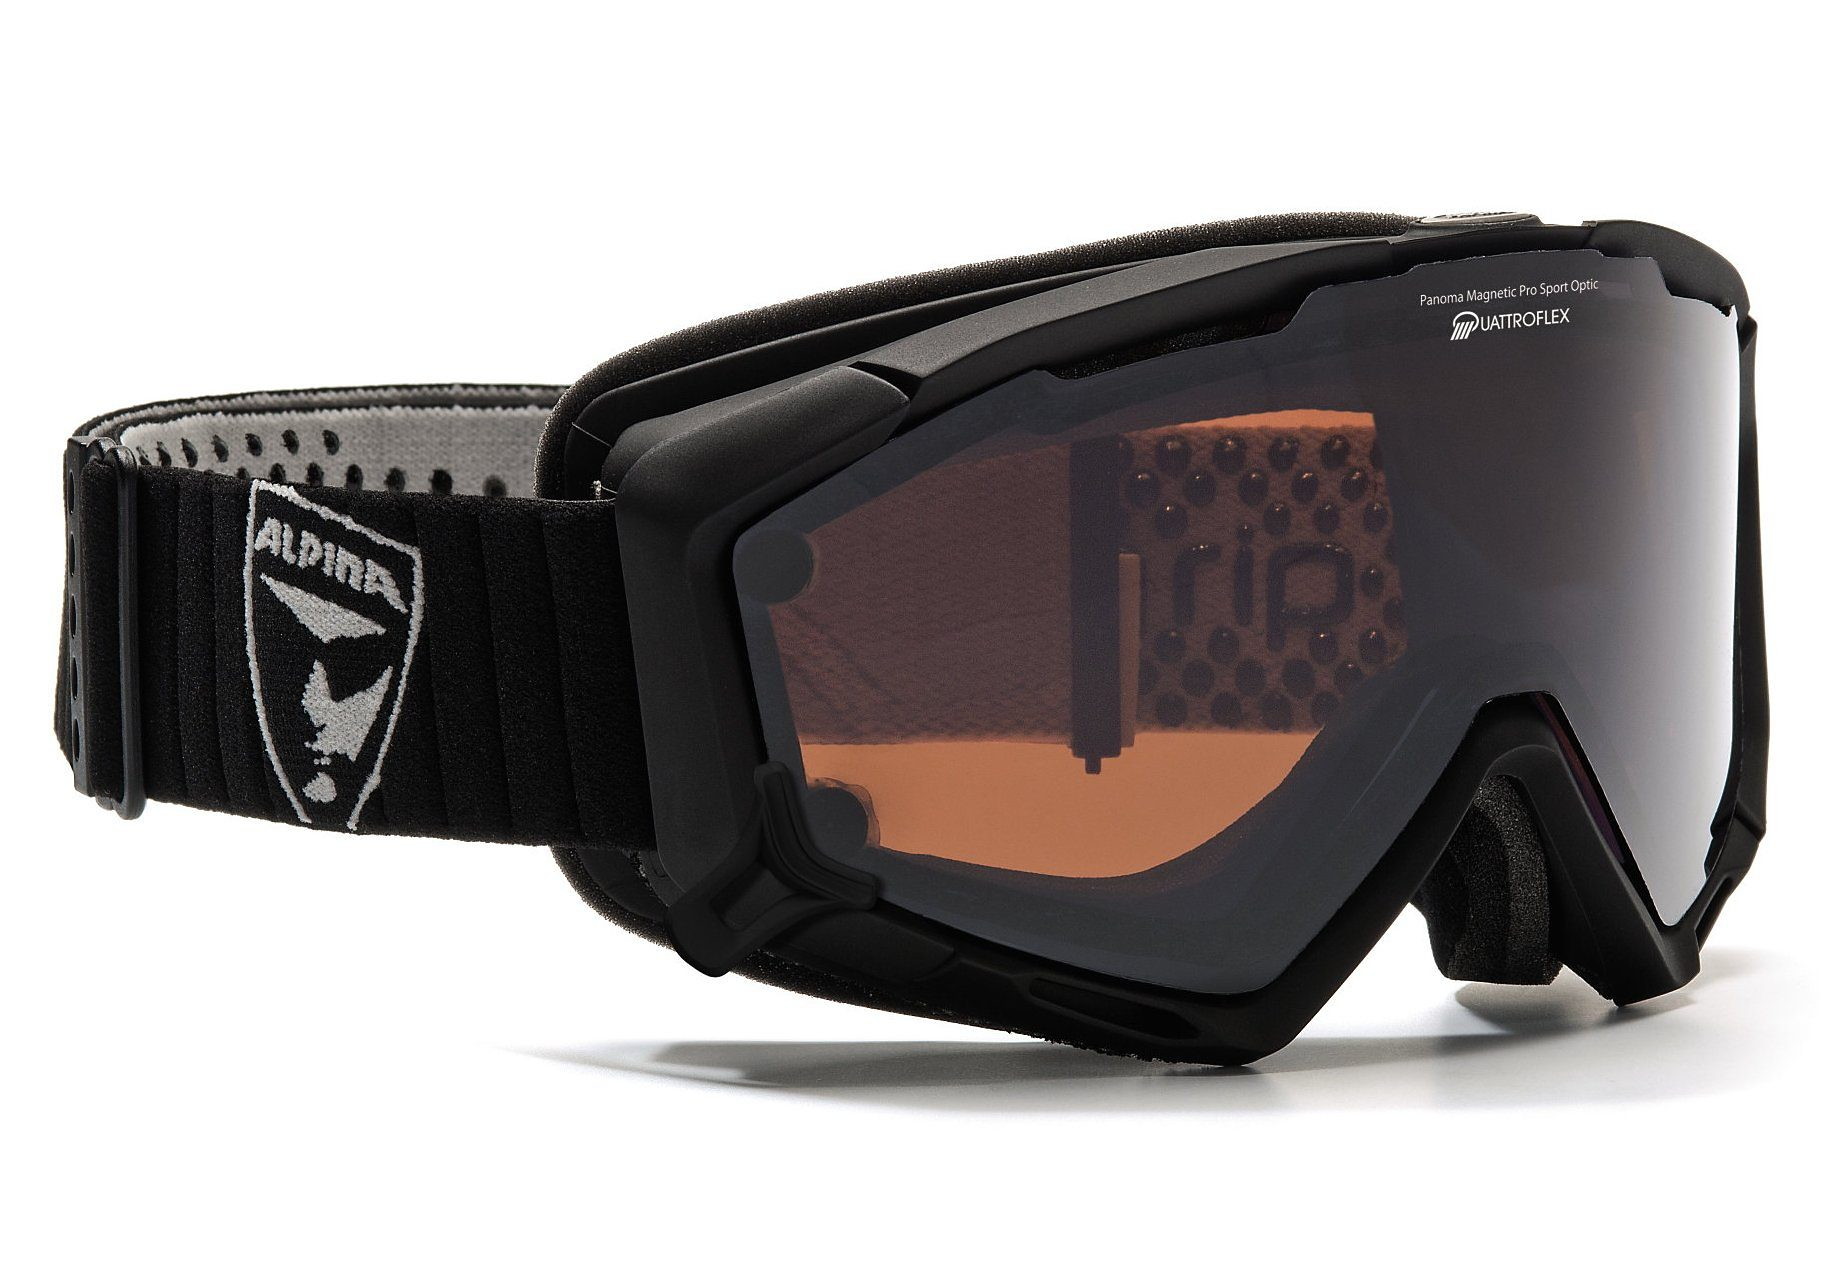 Skibrille, schwarz matt, Alpina, »Panoma Magnetic«, Made in Germany